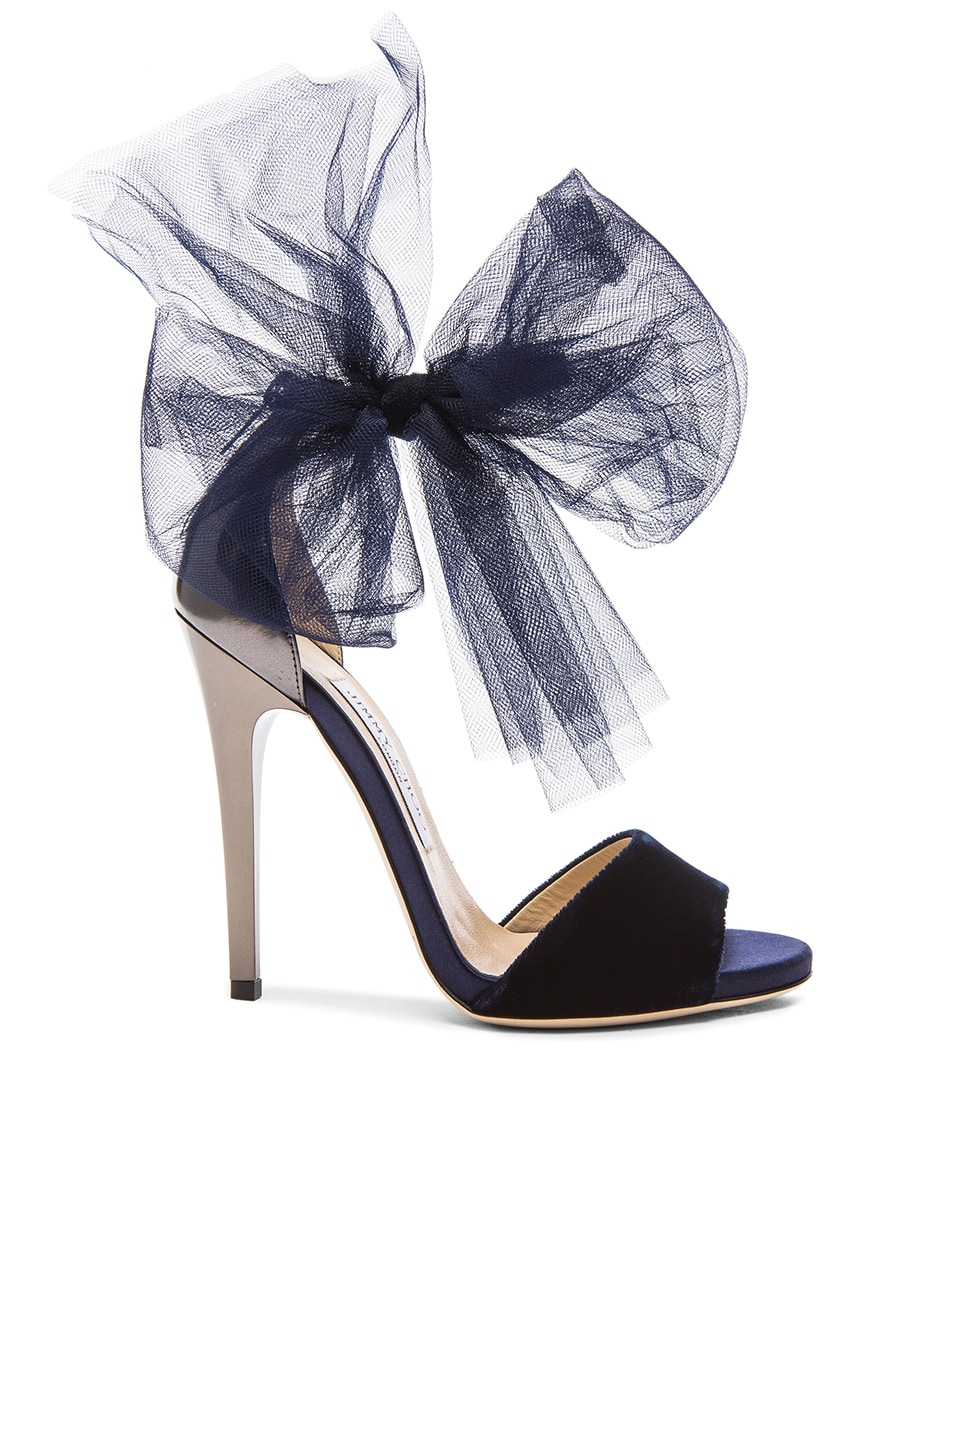 Image 1 of Jimmy Choo Lilyth Satin and Velvet Heels in Anthracite & Navy